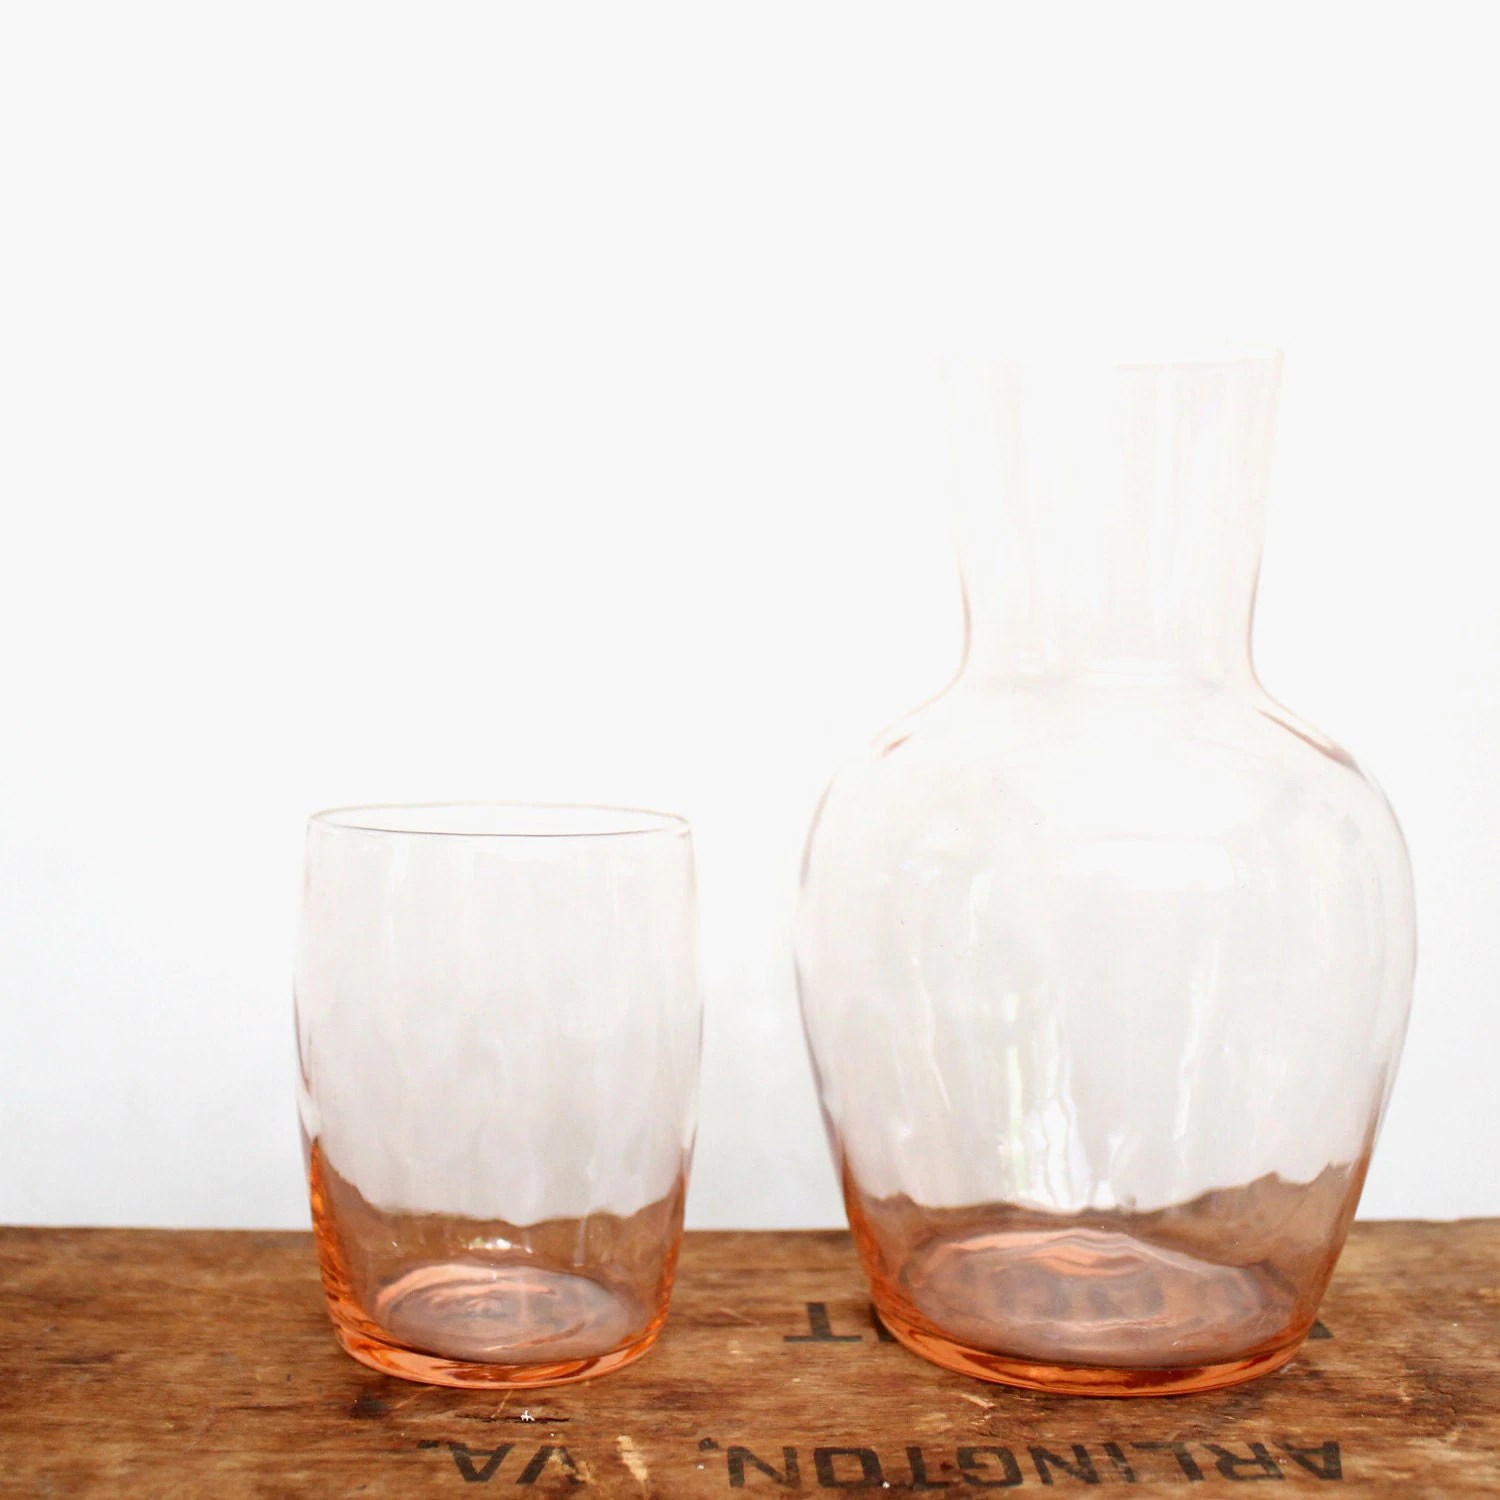 Bedside Water Carafe And Glass Vintage Handblown Glass Bedside Water Carafe By